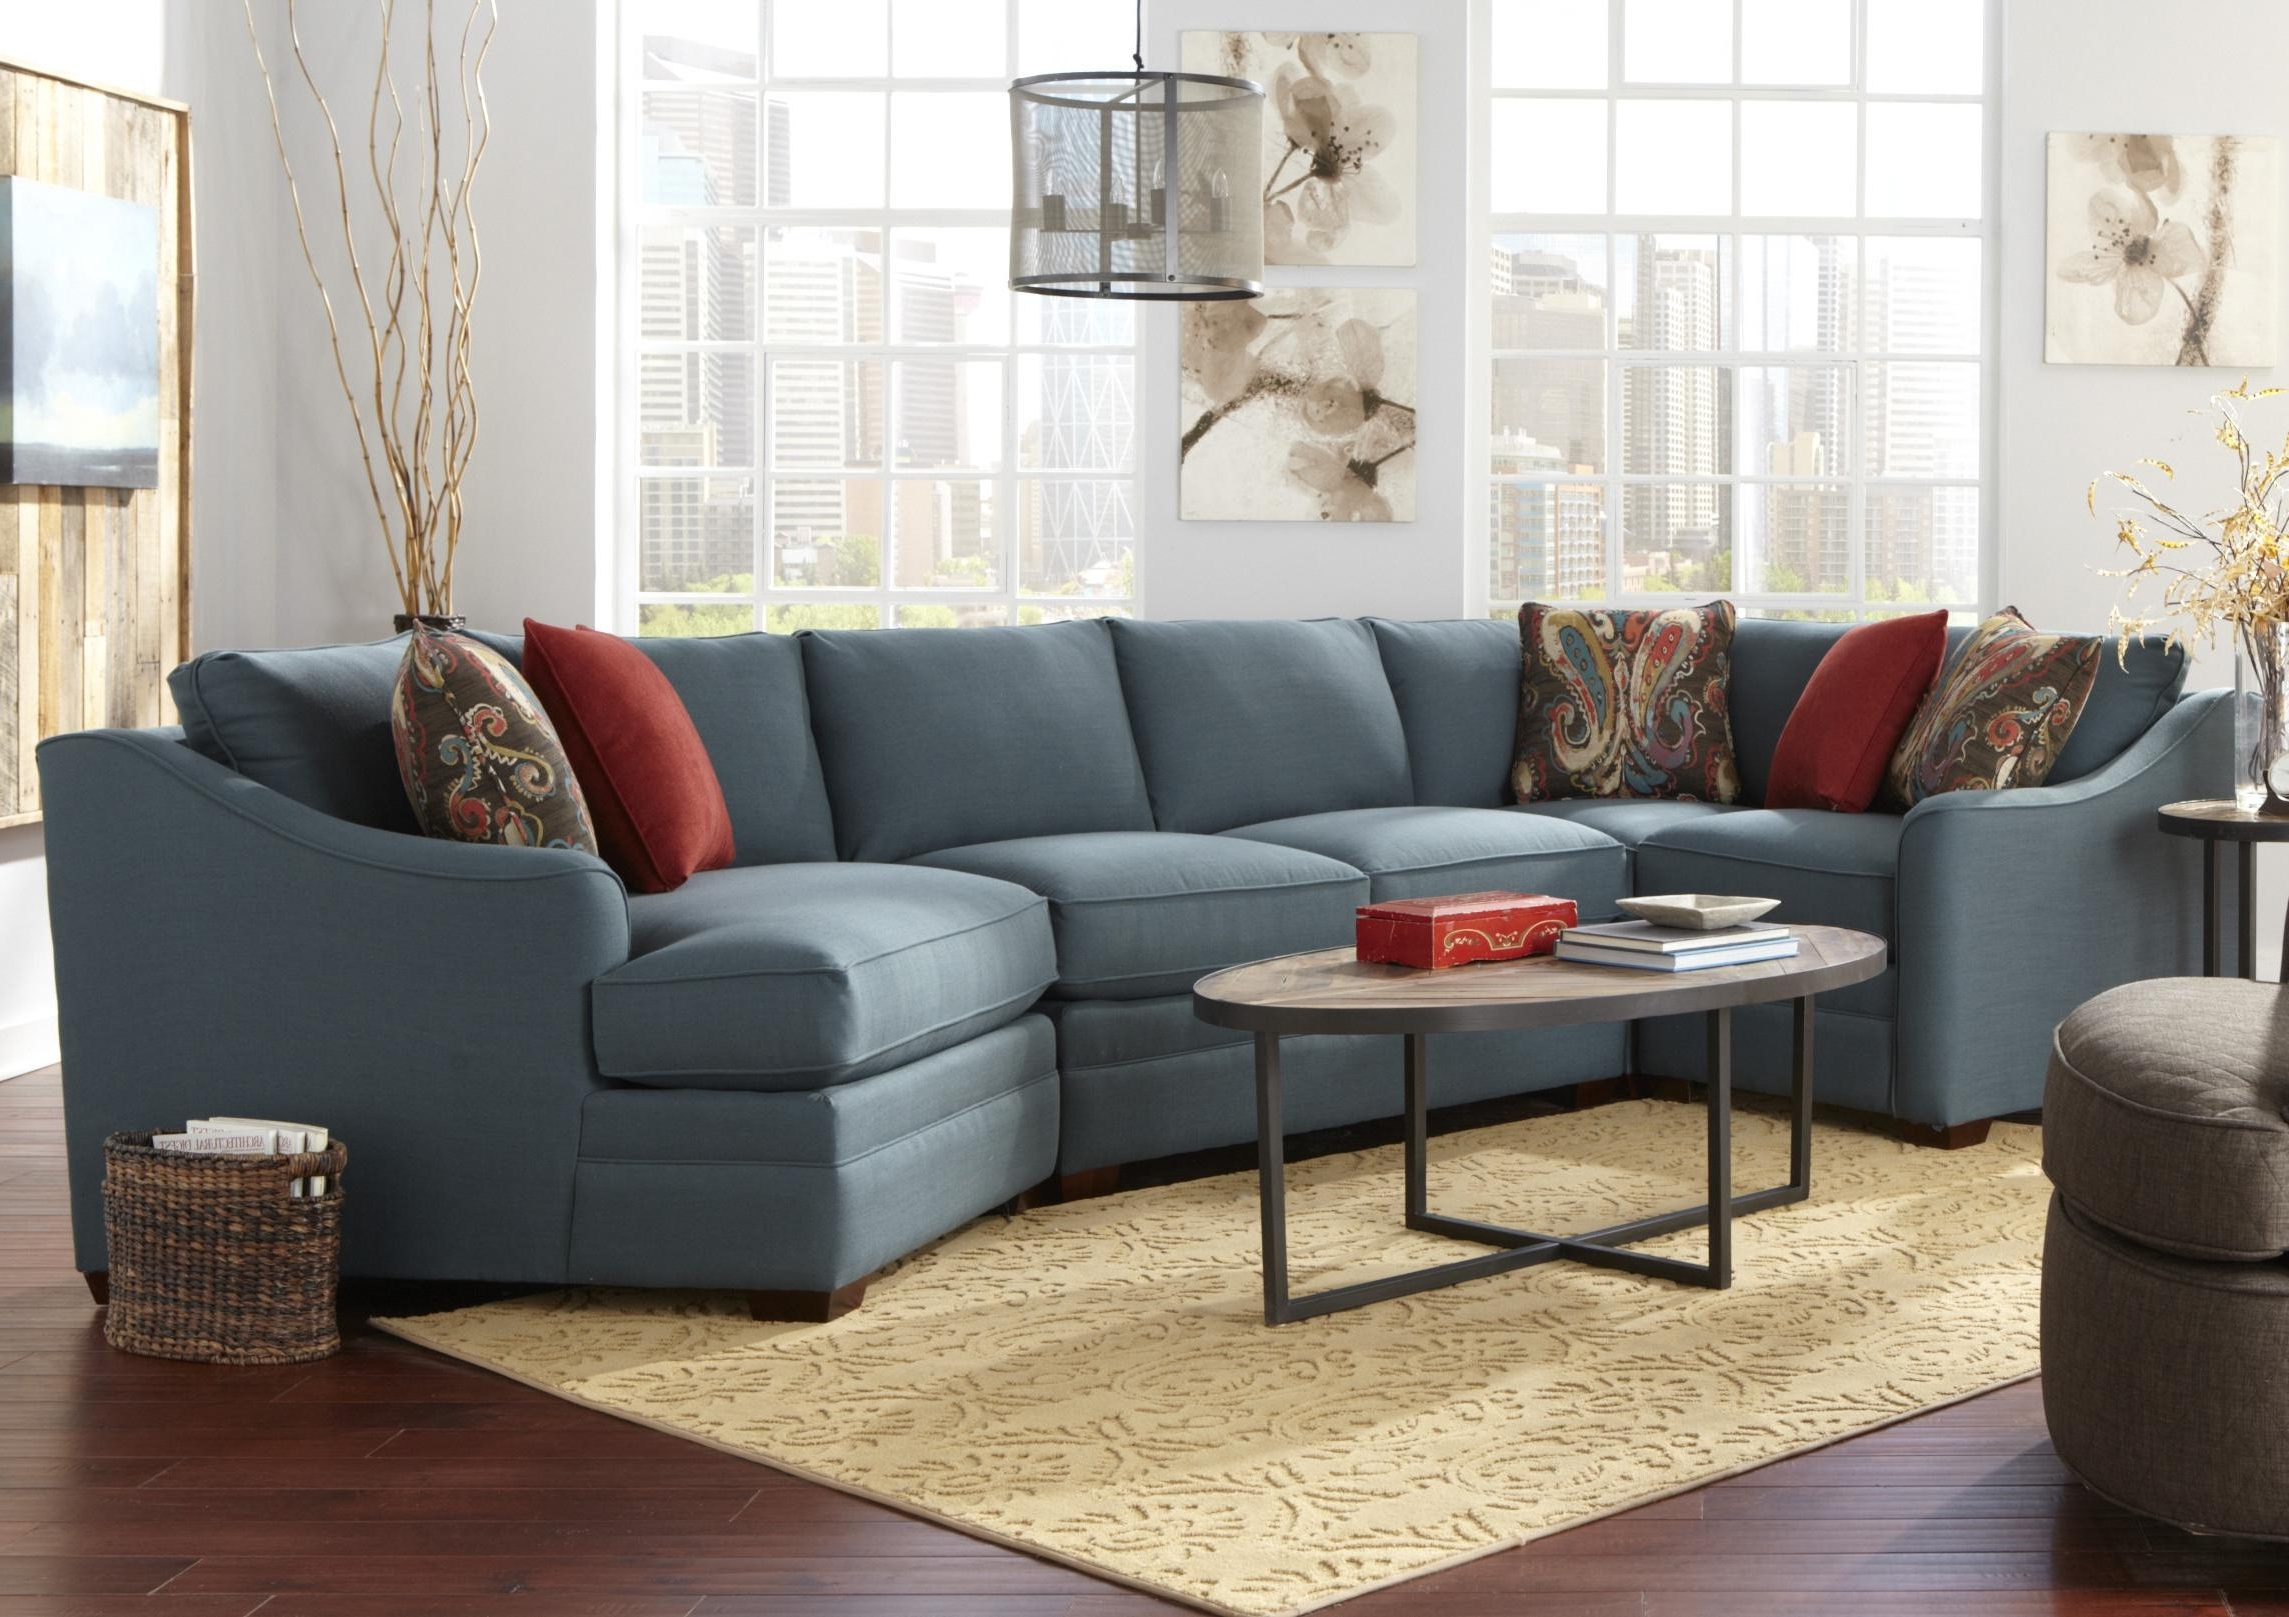 Harrisburg Pa Sectional Sofas Within Well Known Four Piece <B>Customizable</b> Sectional Sofa With Raf Cuddler (View 10 of 20)